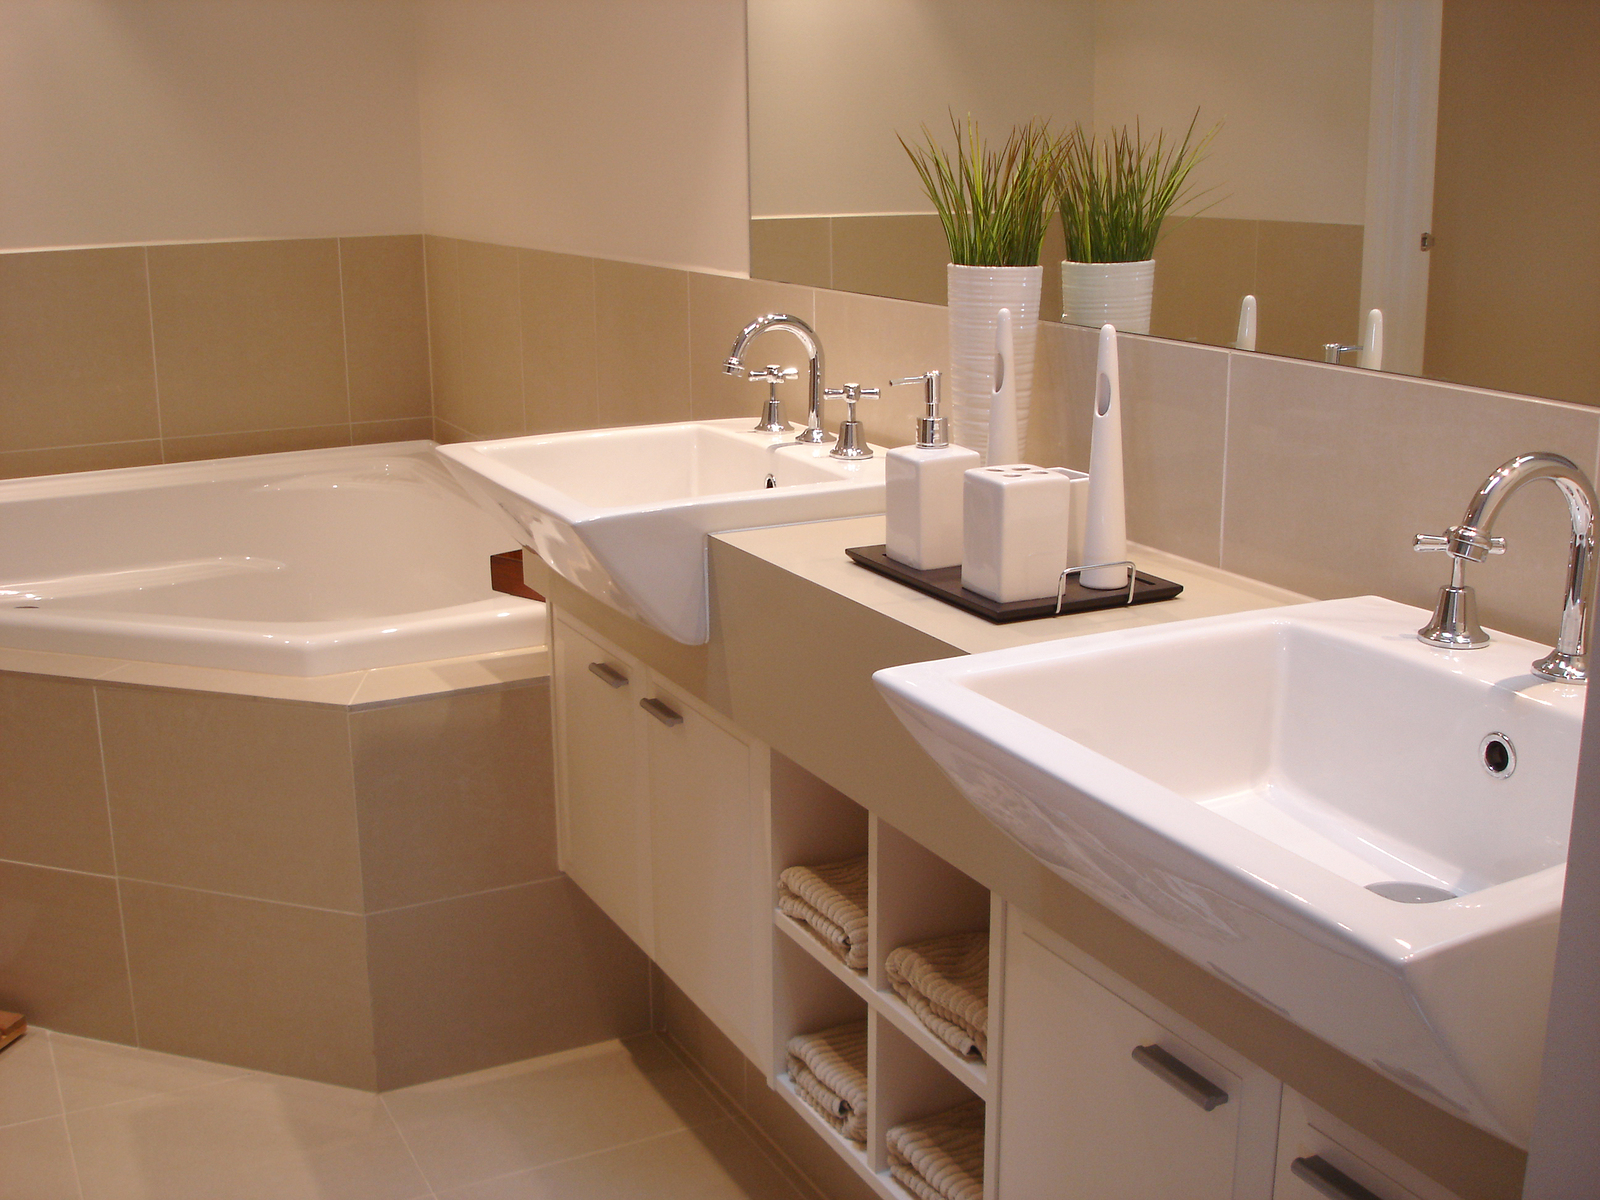 Bathroom Remodeling Contractor Austin TX Ultimate Bros LLC - How much does a full bathroom renovation cost